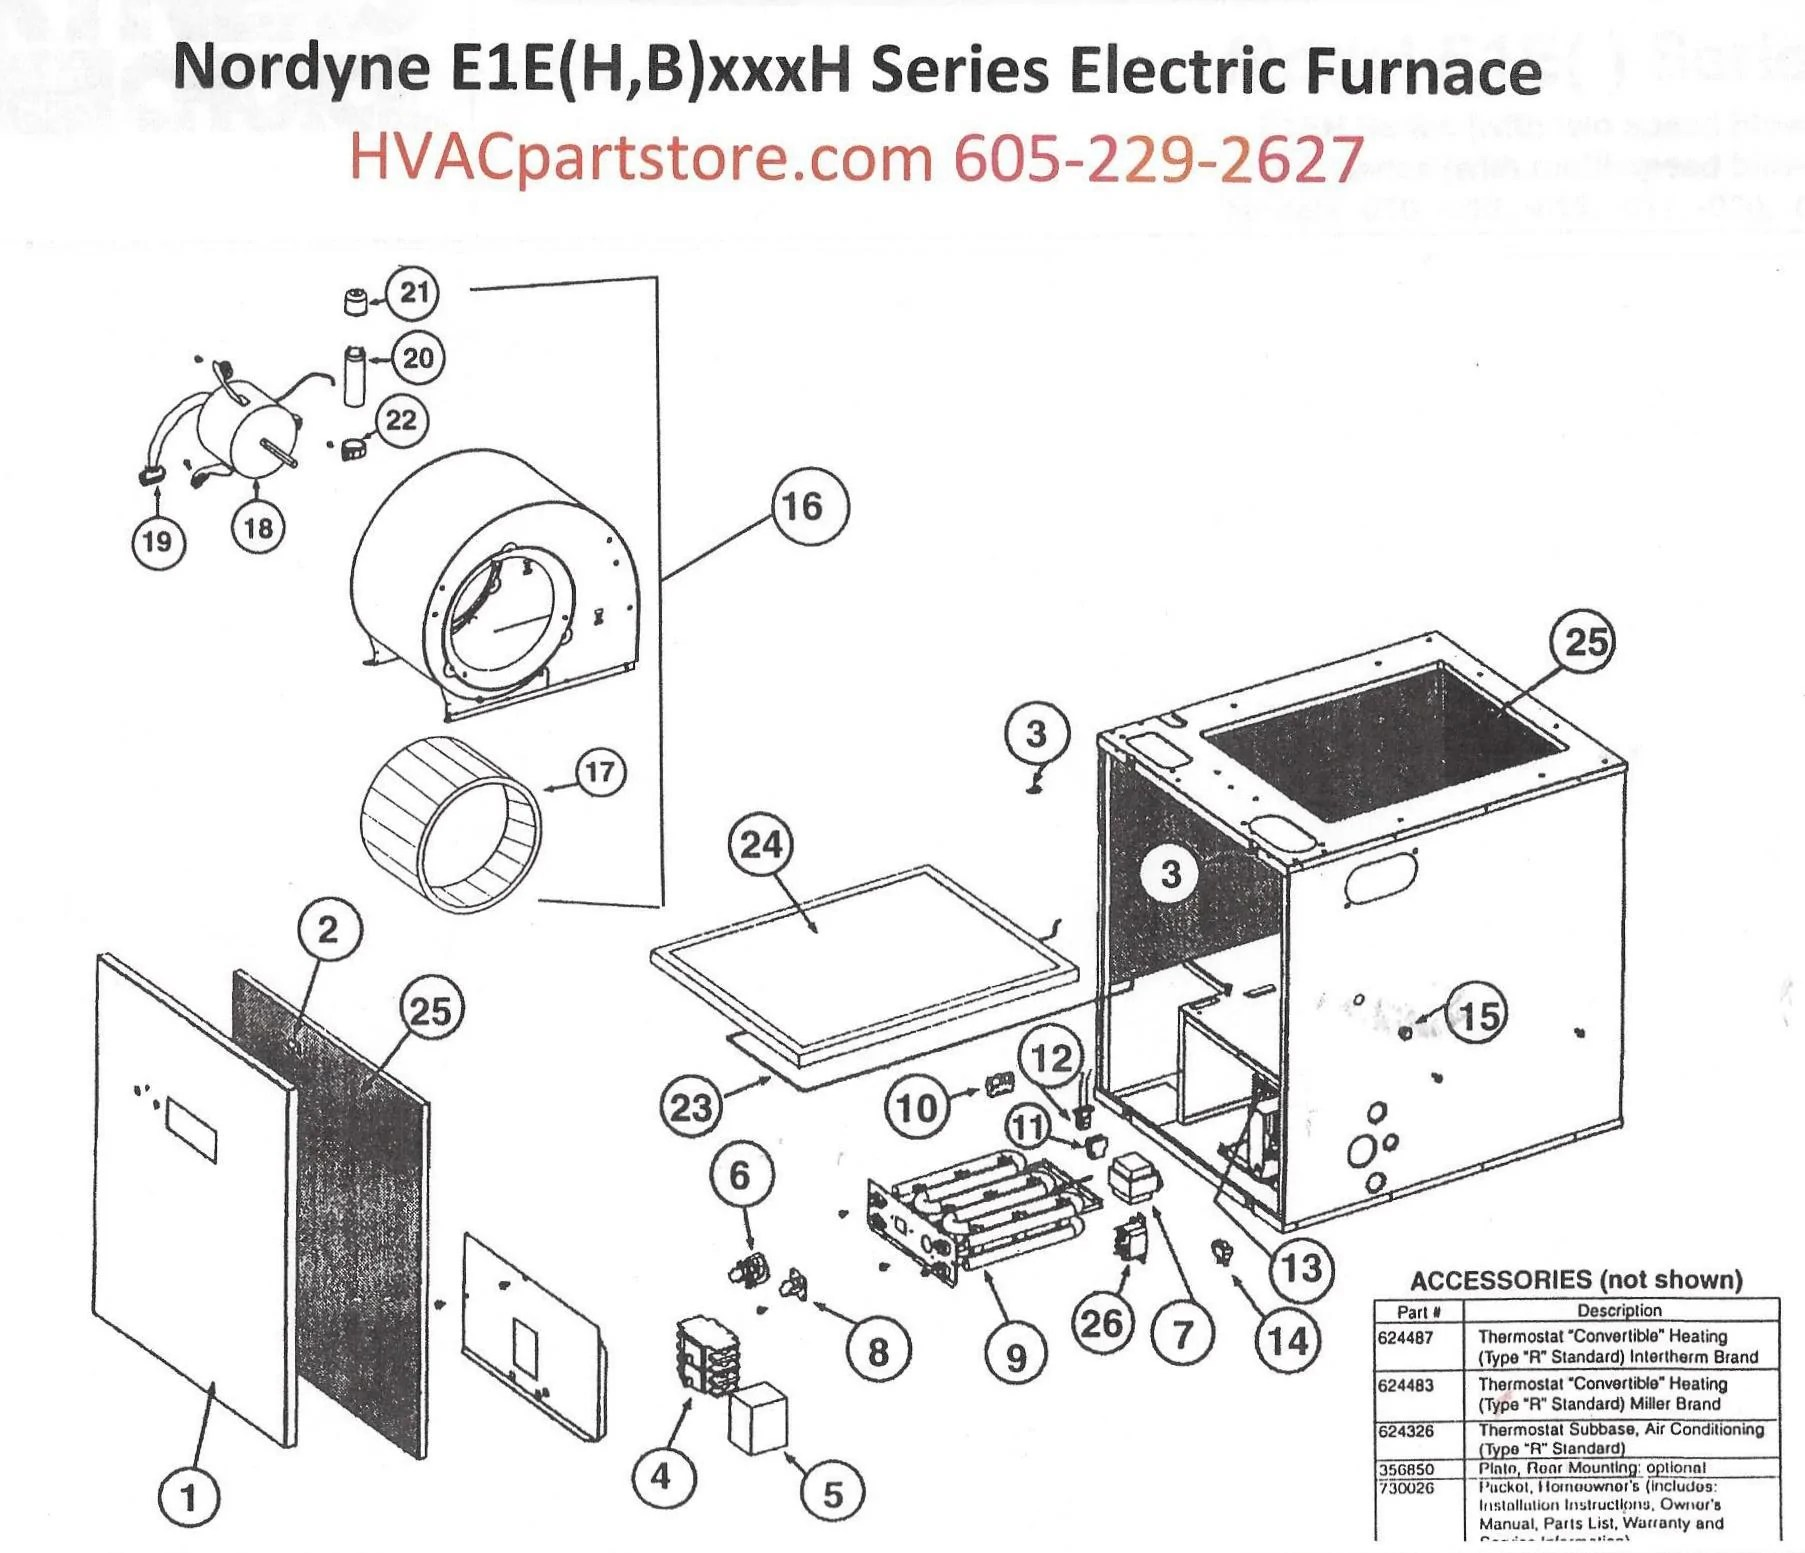 240v 24v transformer wiring diagram 277v light switch e1eh015h nordyne electric furnace parts – hvacpartstore